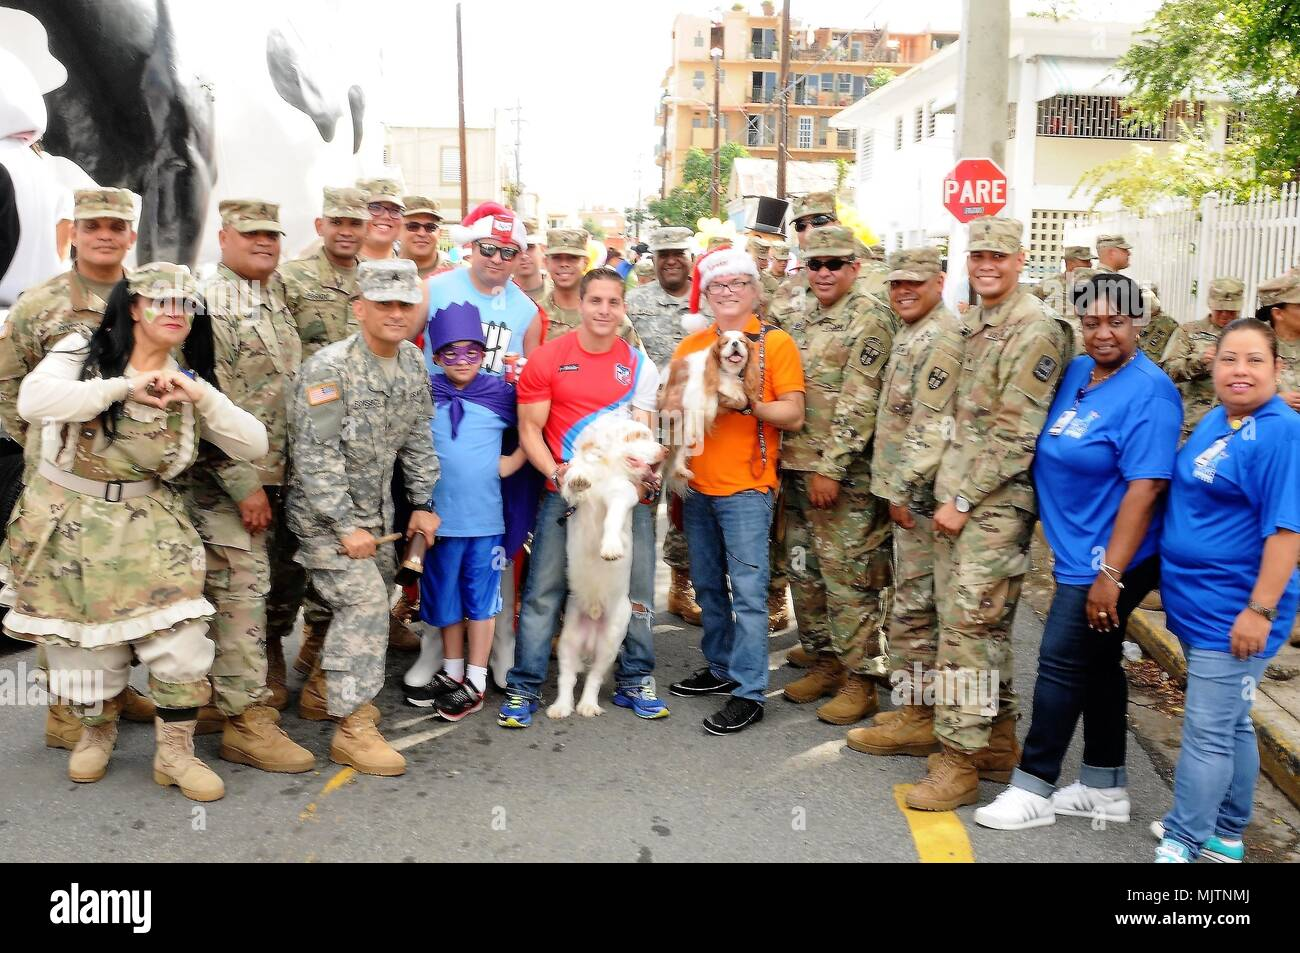 The Puerto Rico National Guard joined to the celebration of the San Jorge Children's Hospital Christmas Parade in Santurce, Puerto Rico, Dec. 21, in solidarity with the mission of the hospital to ensure the health and wellness of our children. Television and sports personalities and singers participate in the activity, as well as children's favorite characters. (PRNG photos by: Spc. Hamiel Irizarry/Released-PAO) - Stock Image